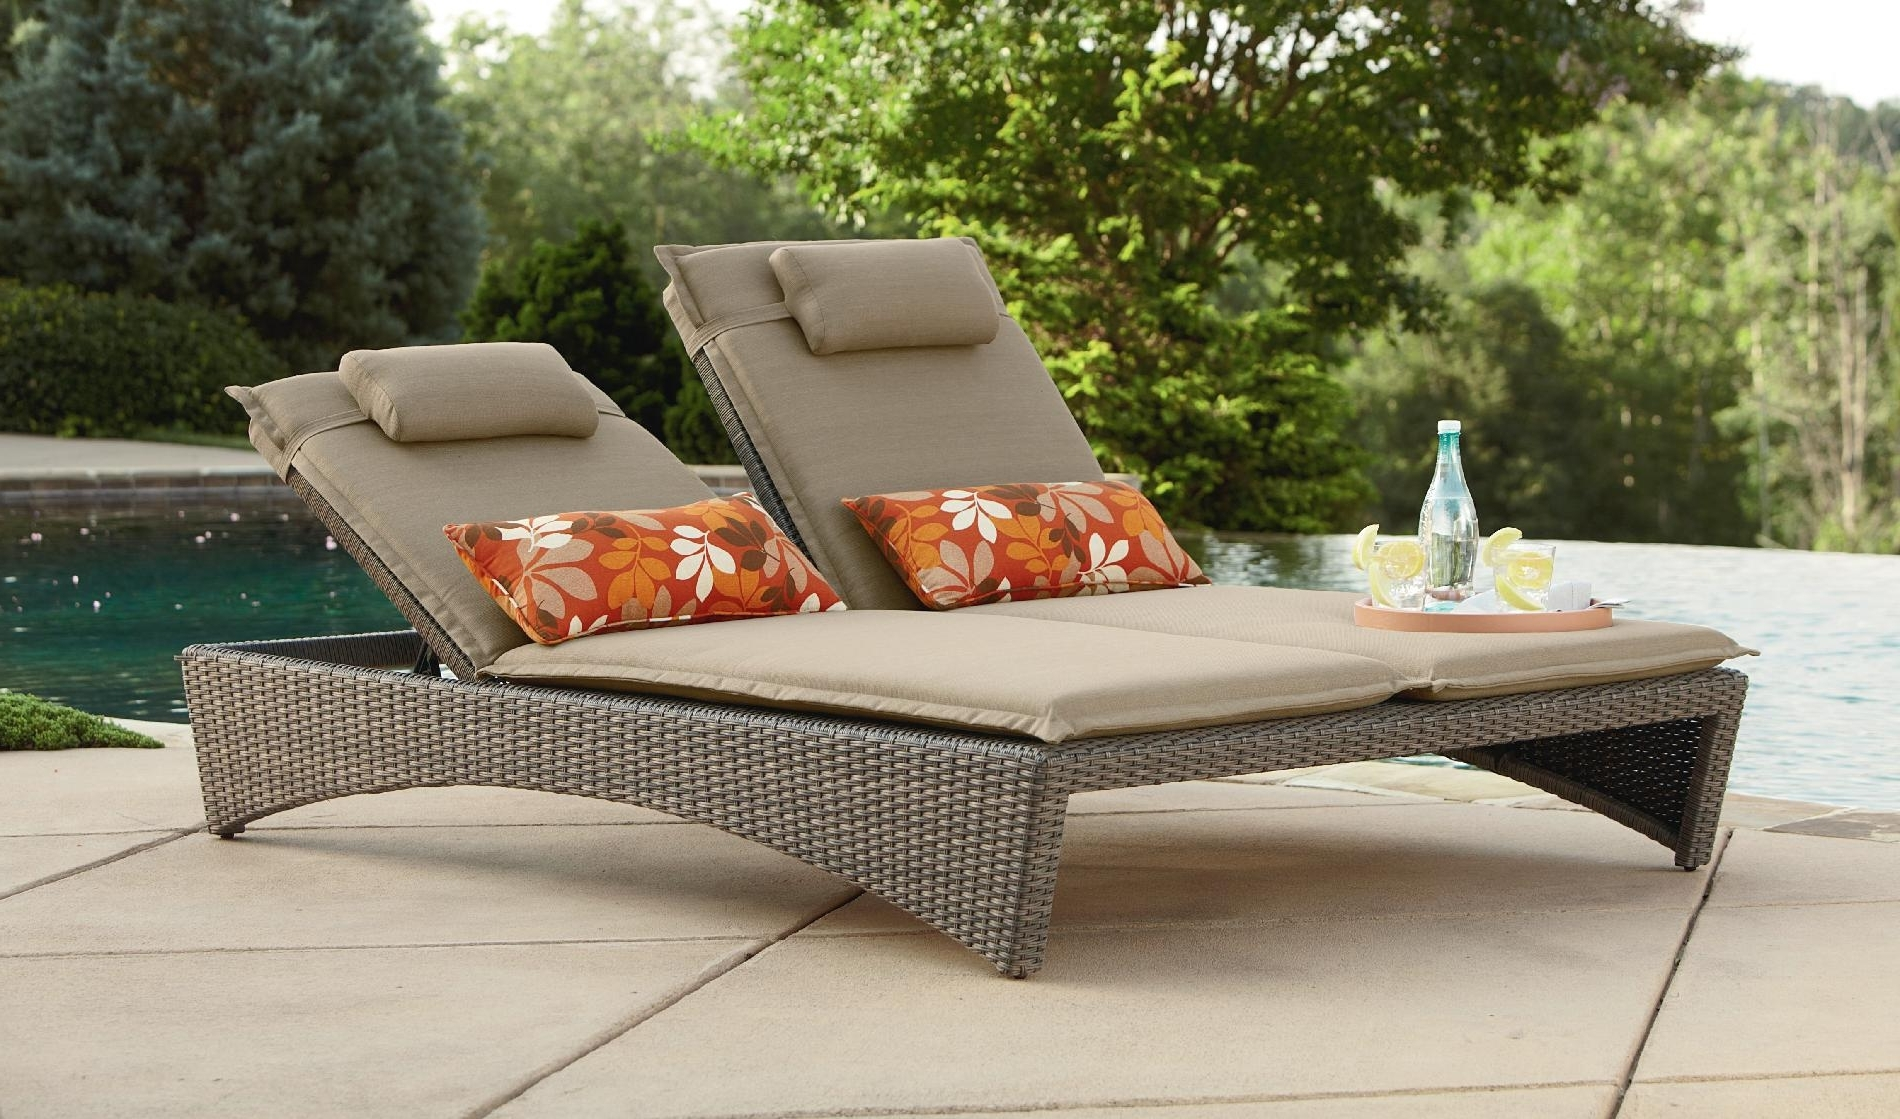 Newest Double Chaise Lounge Chairs Within Picture 3 Of 35 – Walmart Patio Lounge Chairs Luxury Patio (View 11 of 15)